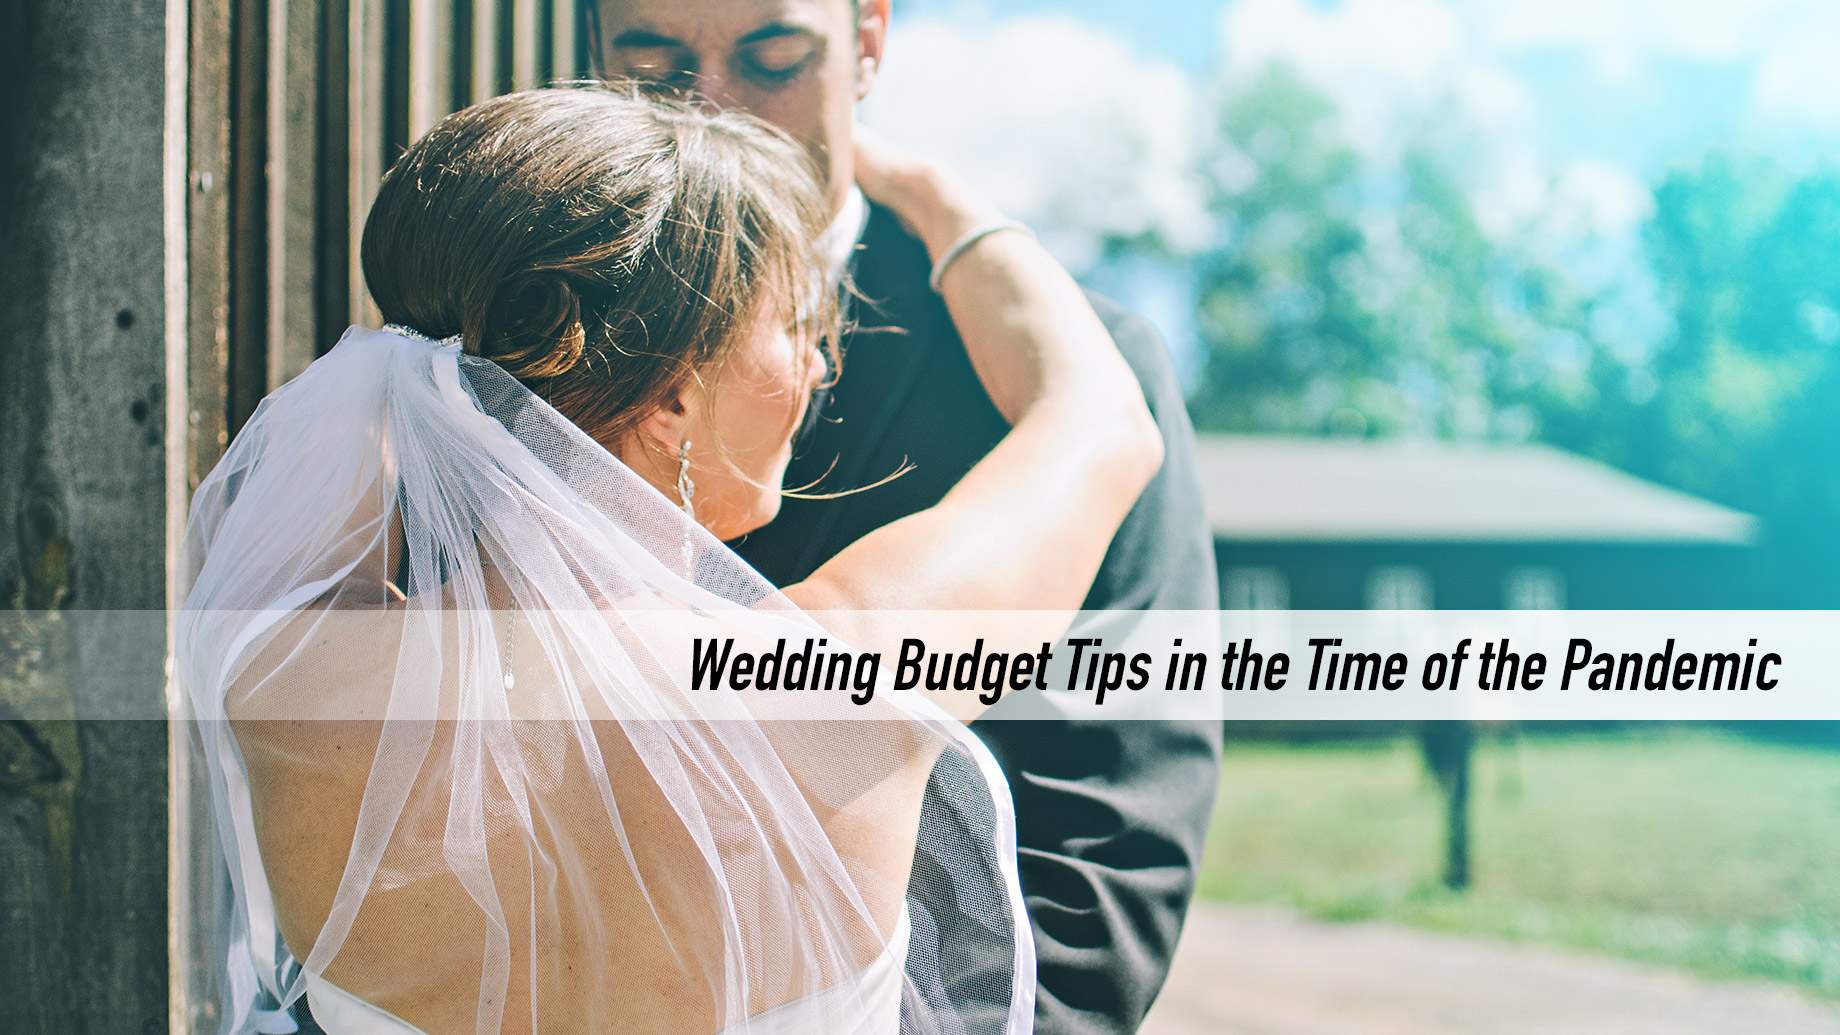 Wedding Budget Tips in the Time of the Pandemic